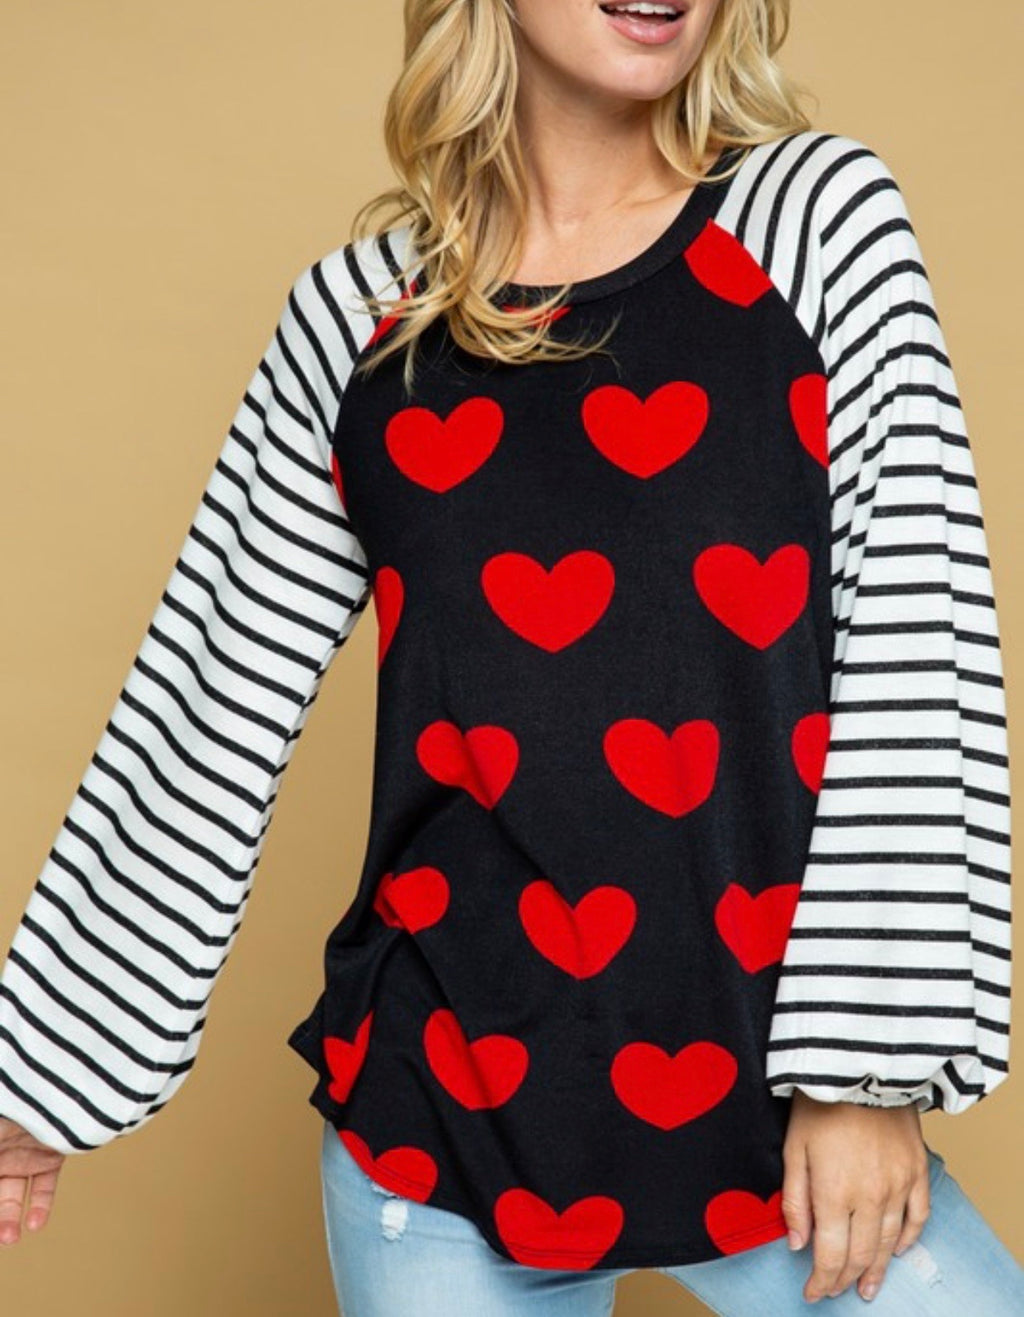 Heart Top with Striped Sleeves